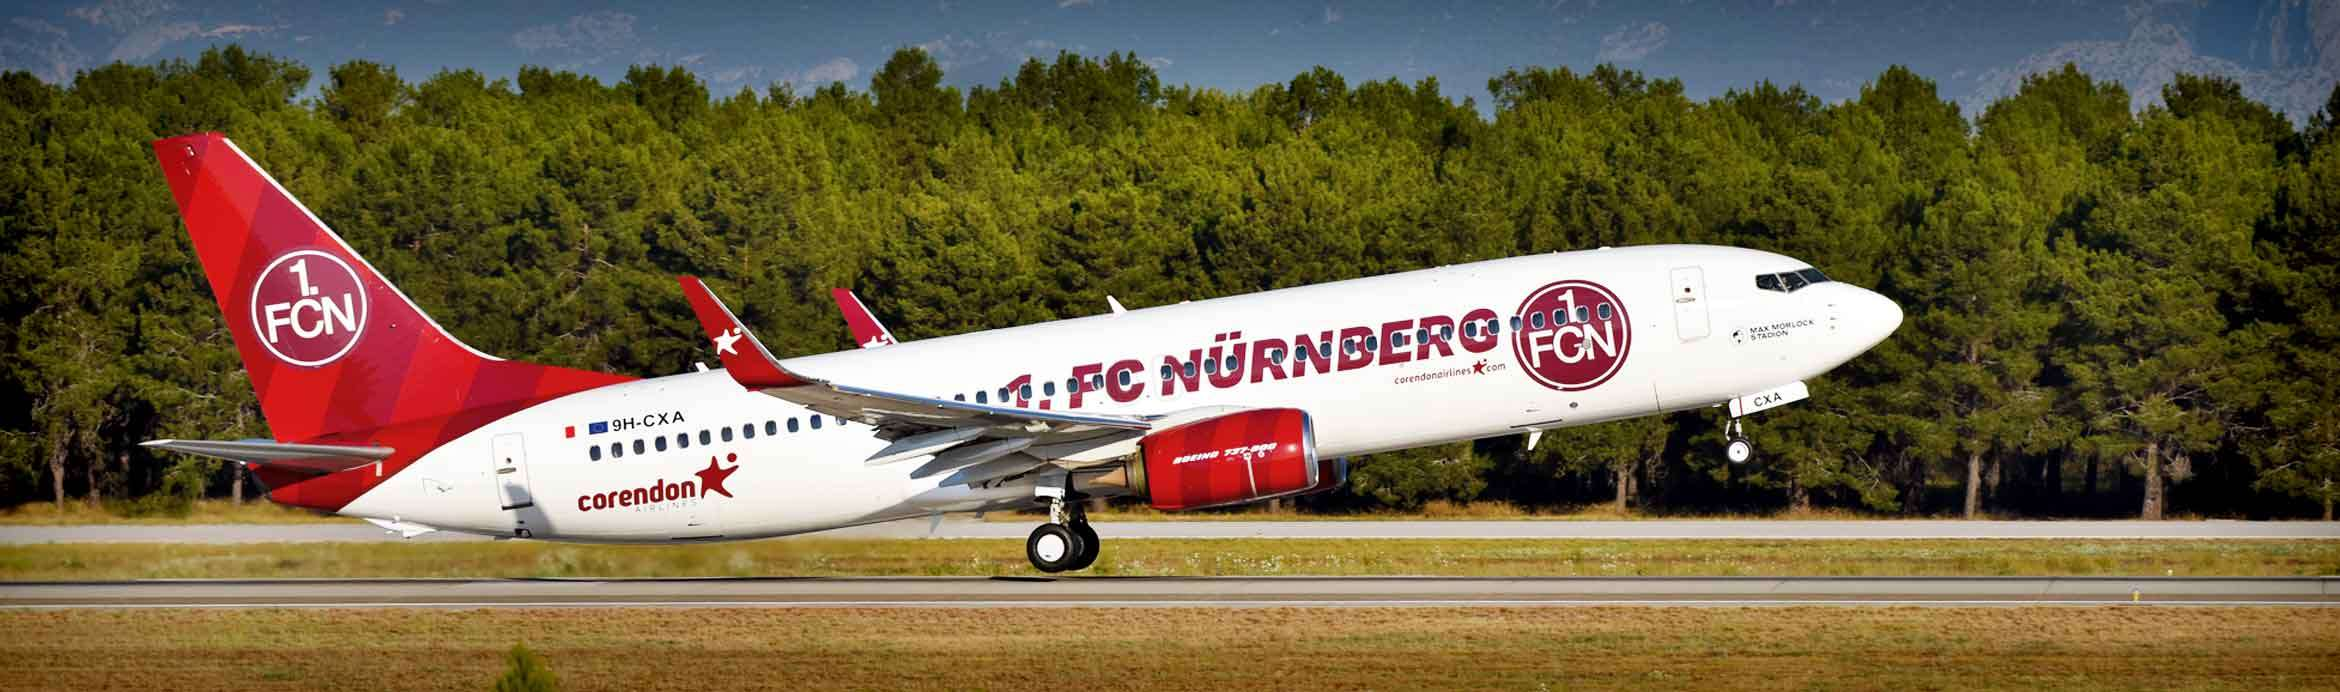 Corendon Airlines Signed Sponsorship Agreement with 1. FC Nürnberg